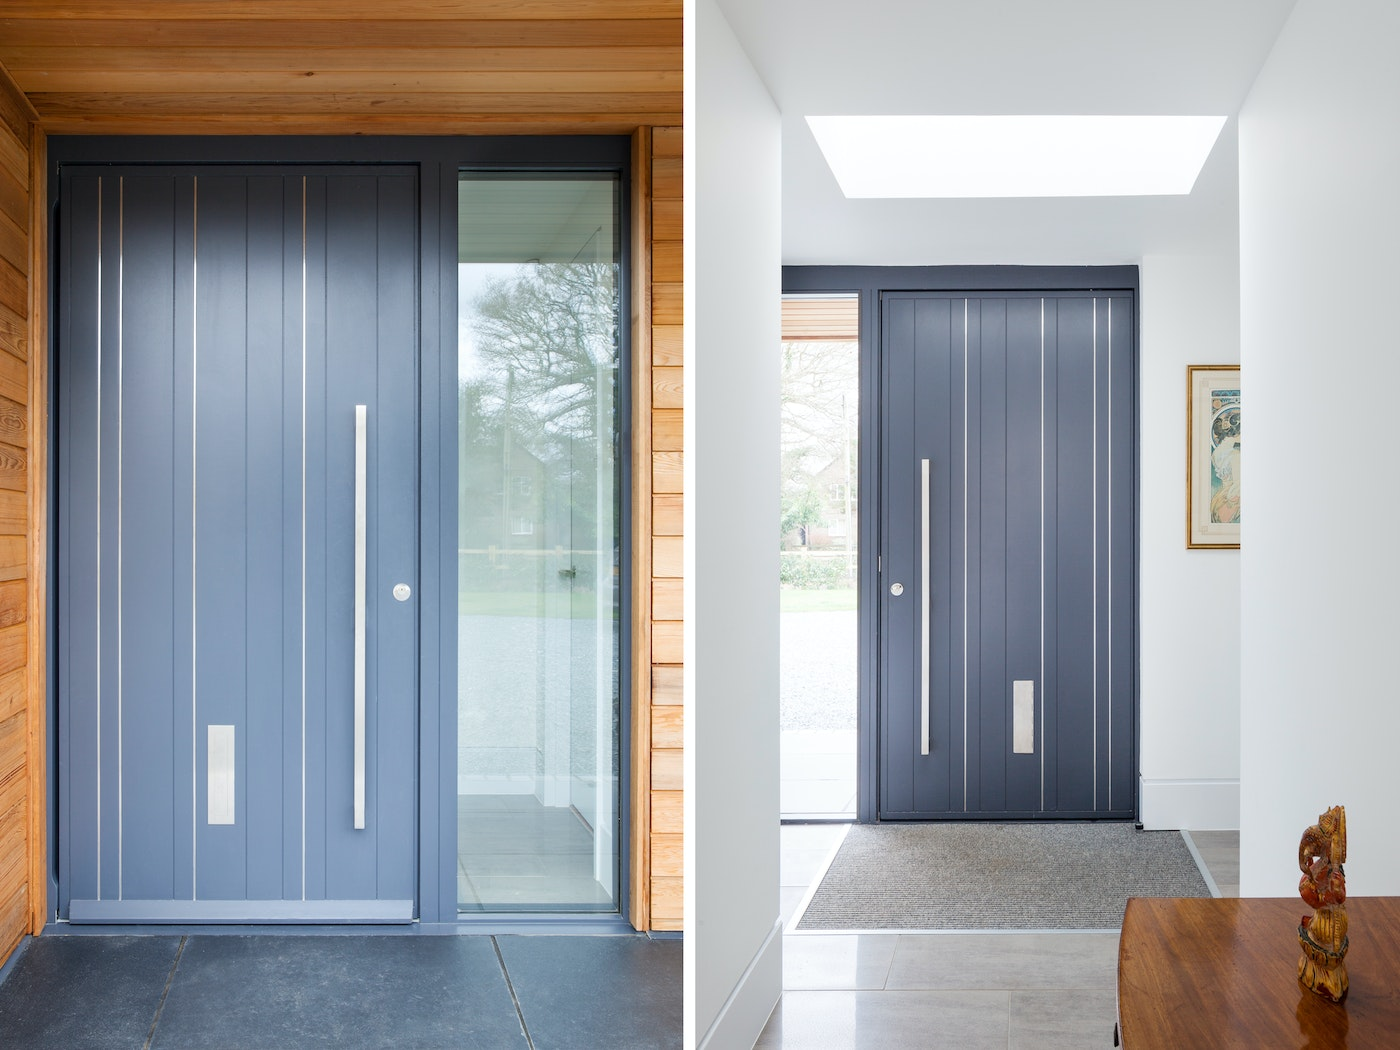 The stainless steel strips in the contemporary grey door add drama